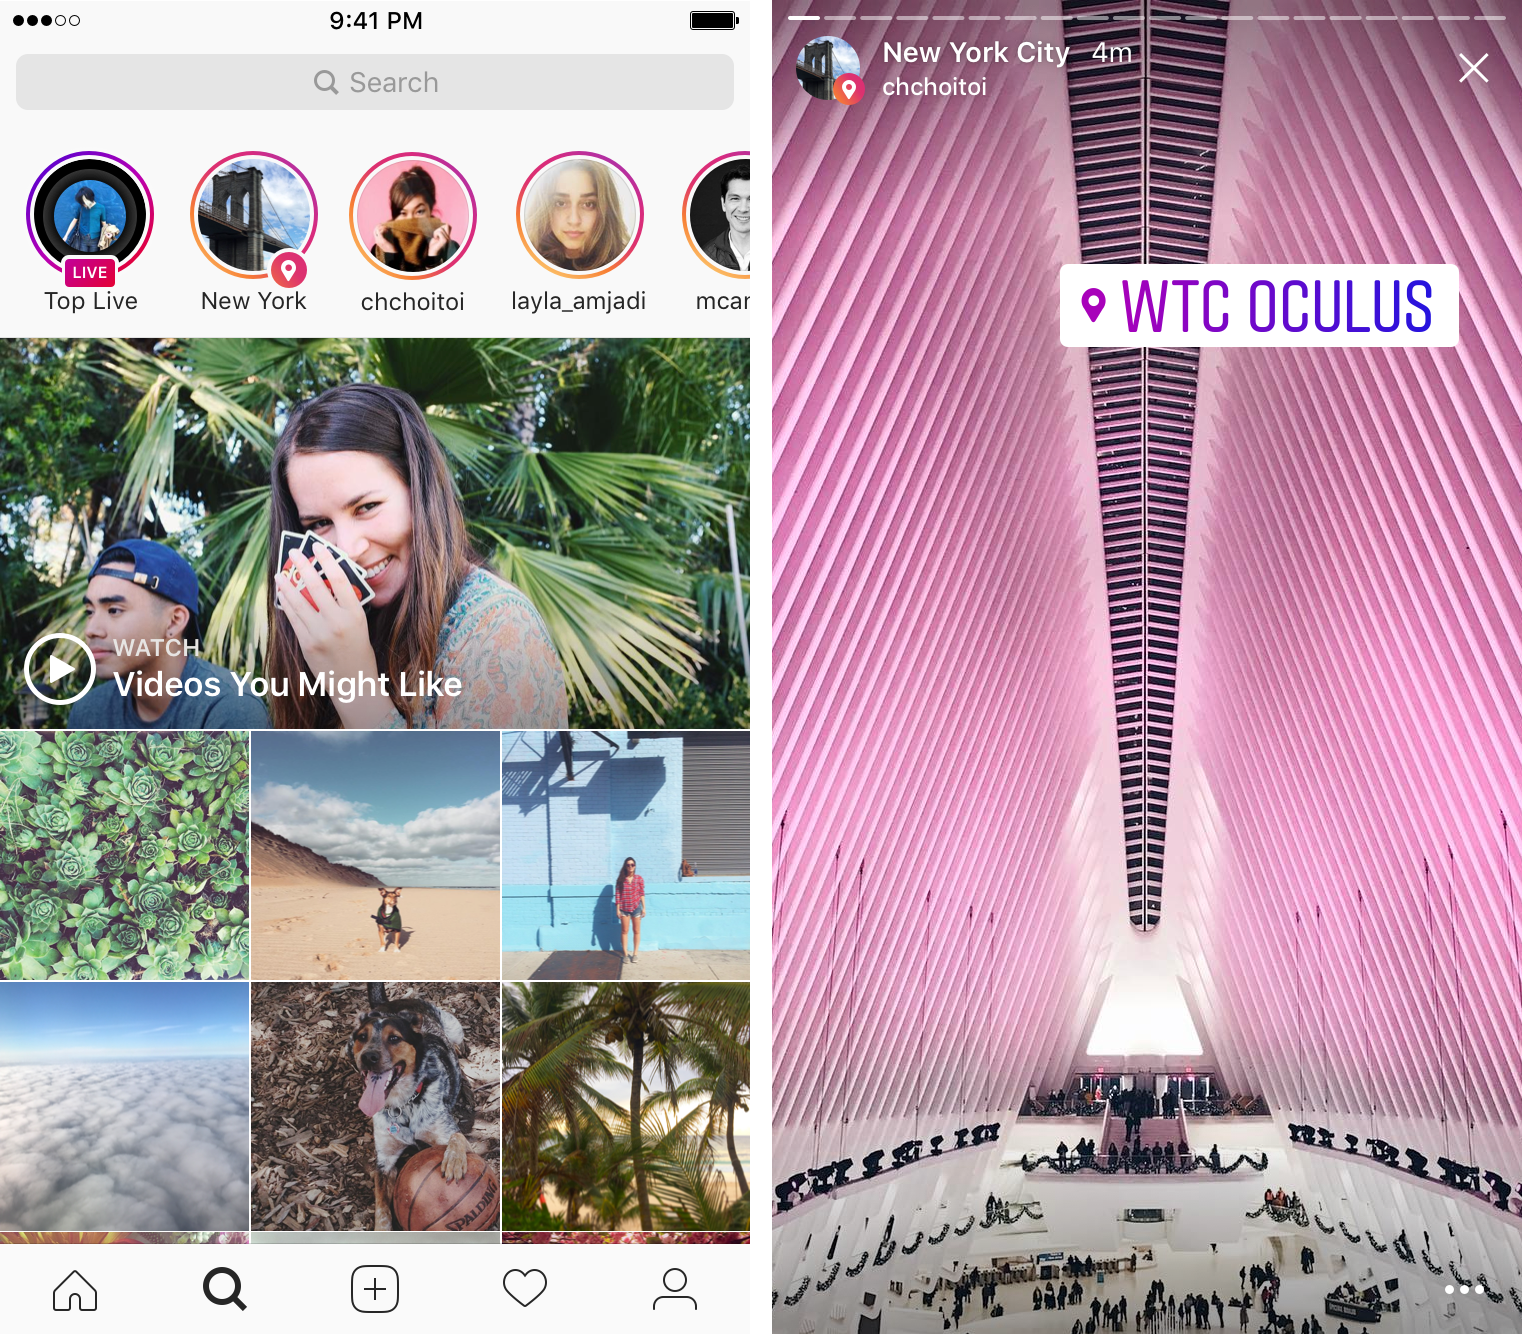 Instagram's Twist On The Search Is To Enable It For Hashtags As Well As  Locations Search #ootd To Browse Other Peoples Outfits Of The Day, For  Example,